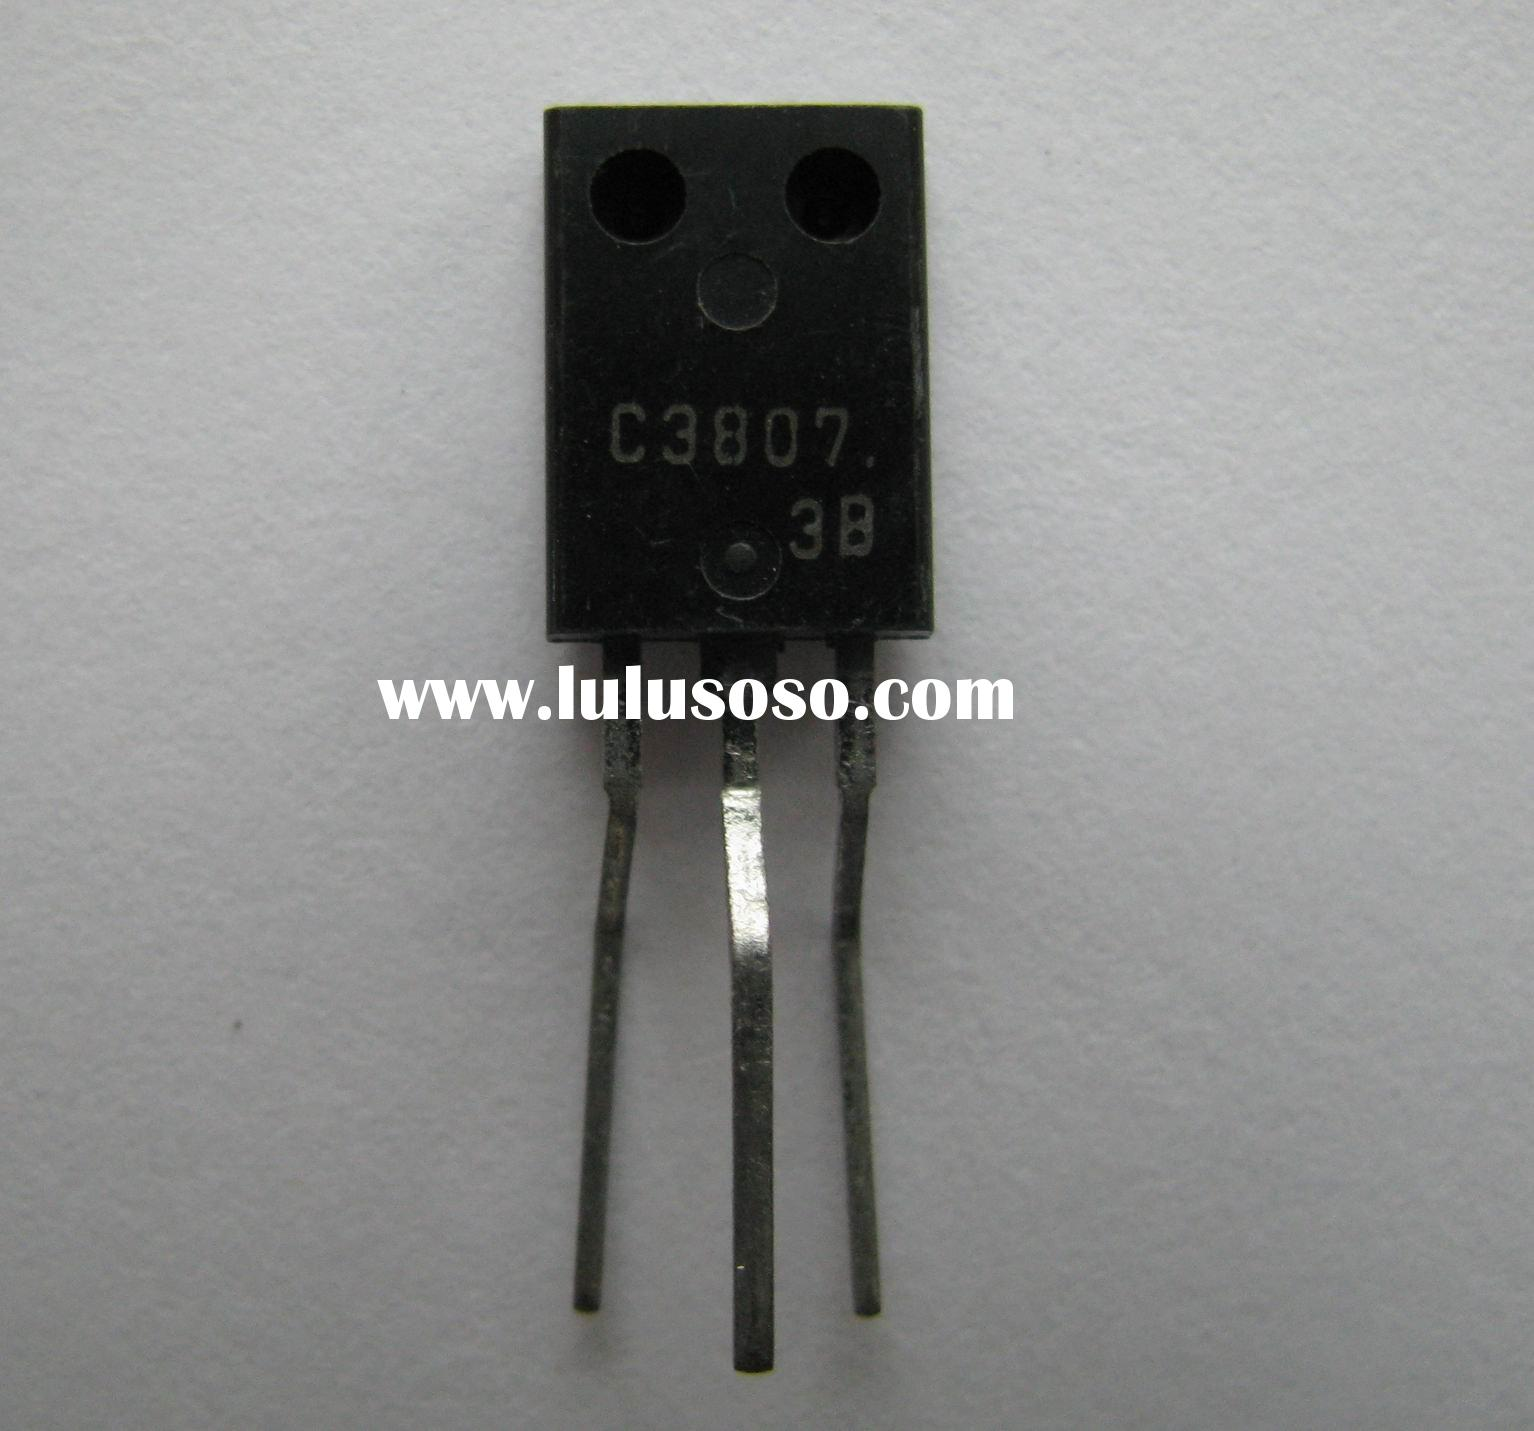 Npn Epitaxial Transistor Manufacturers In 13001 Electronic Ballast Circuit Planar Silicon 2sc3807m